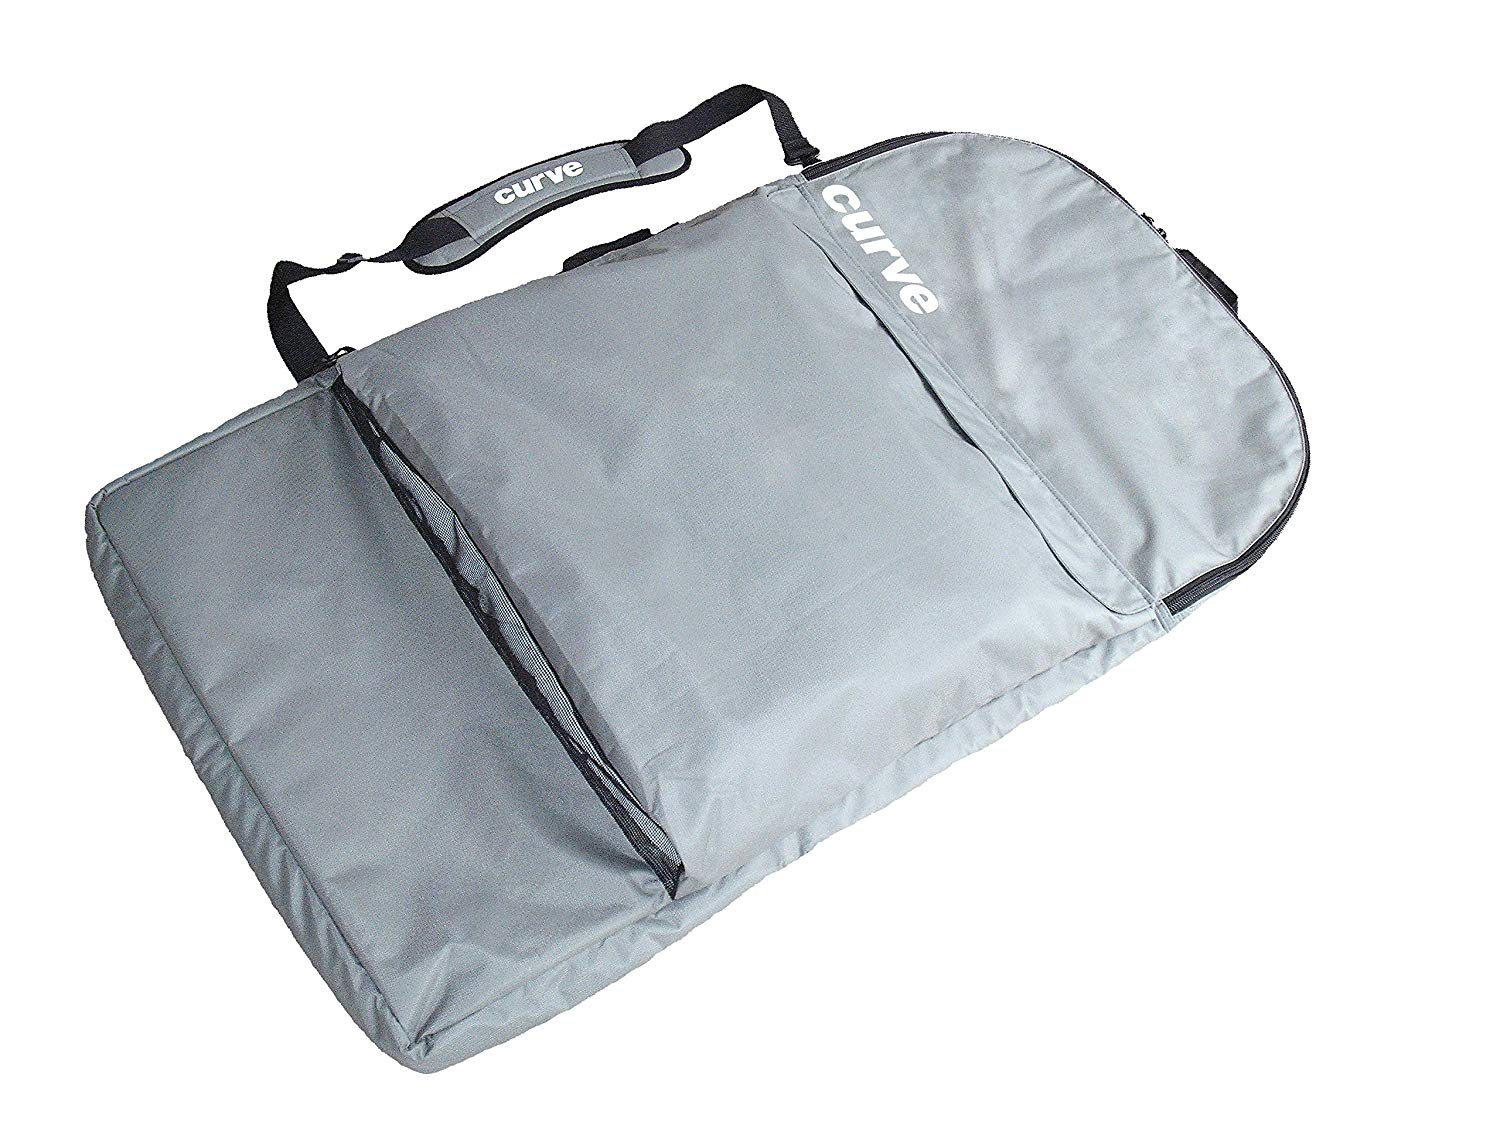 eafb0fb120a Get Quotations · Curve Bodyboard Bag Bodyboard Cover for 1 or 2 boards -  GLOBAL Padded Travel Bag